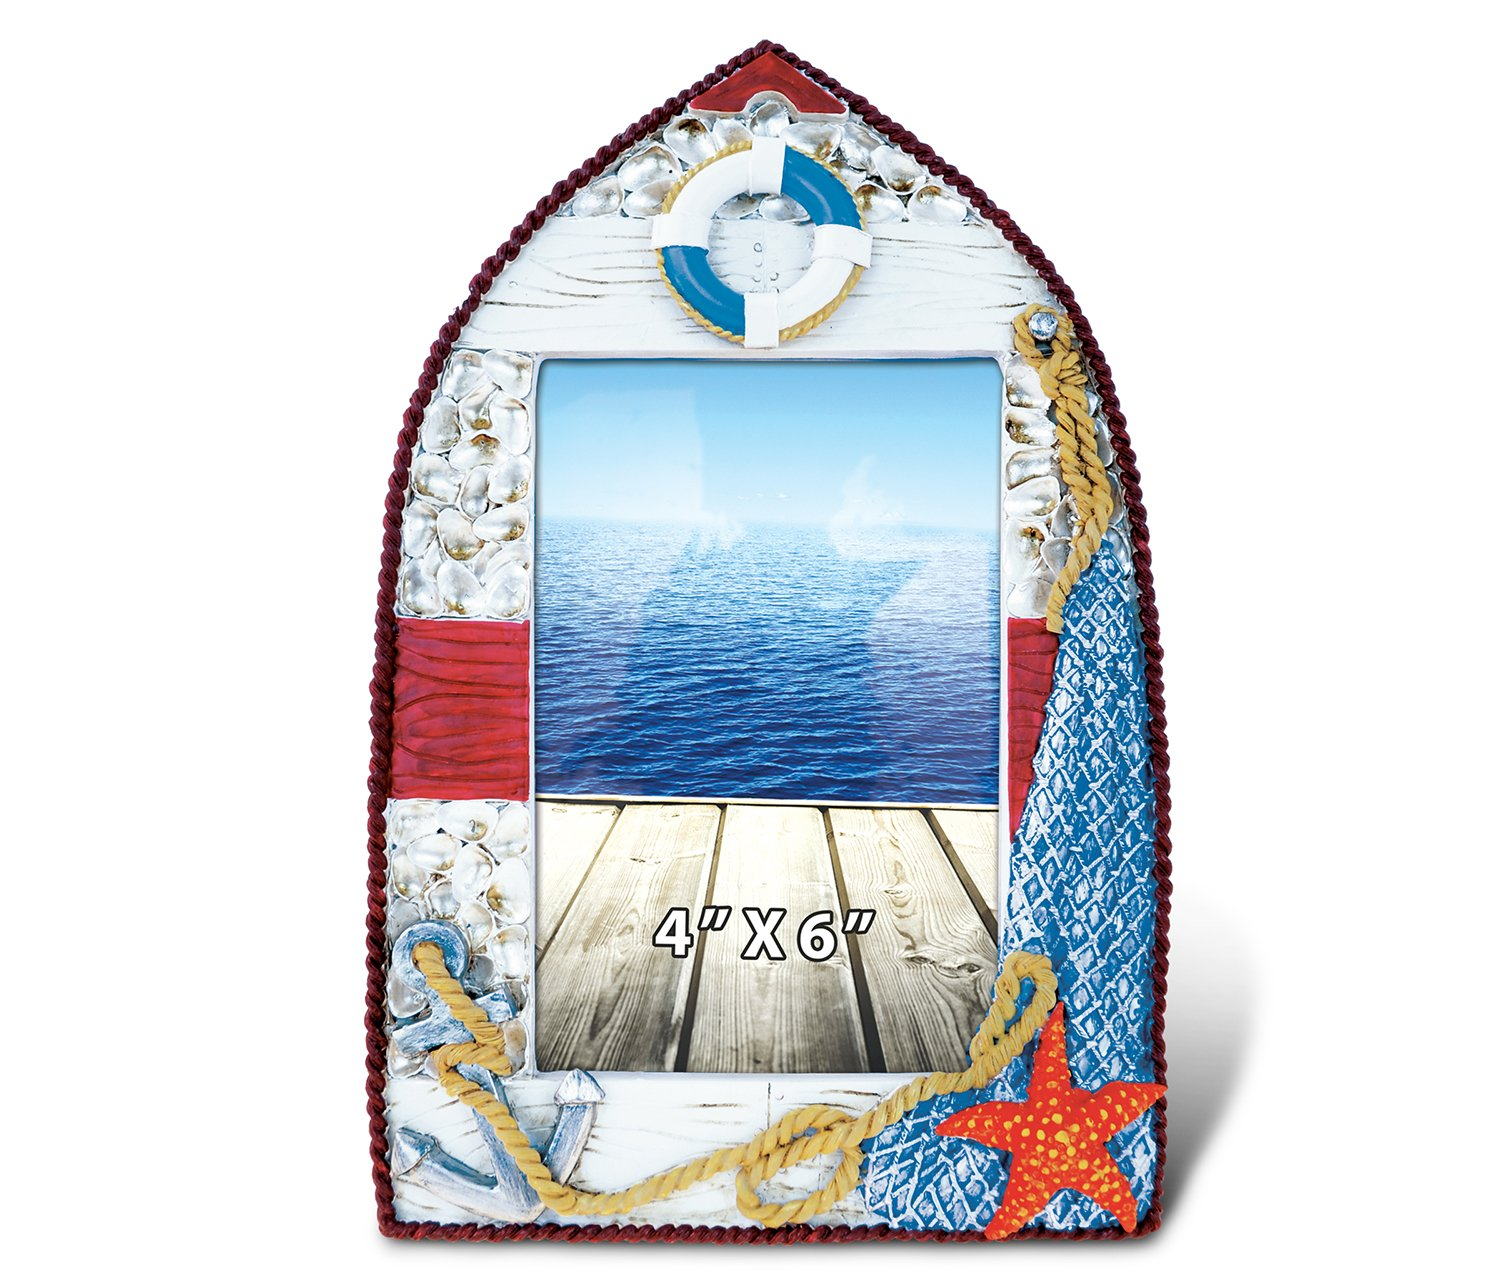 Puzzled Red Nautical Photo Frame 6''x4'' Nautical Picture Frame - Beach Theme - Unique Elegant Gift and Souvenir - Item #9534